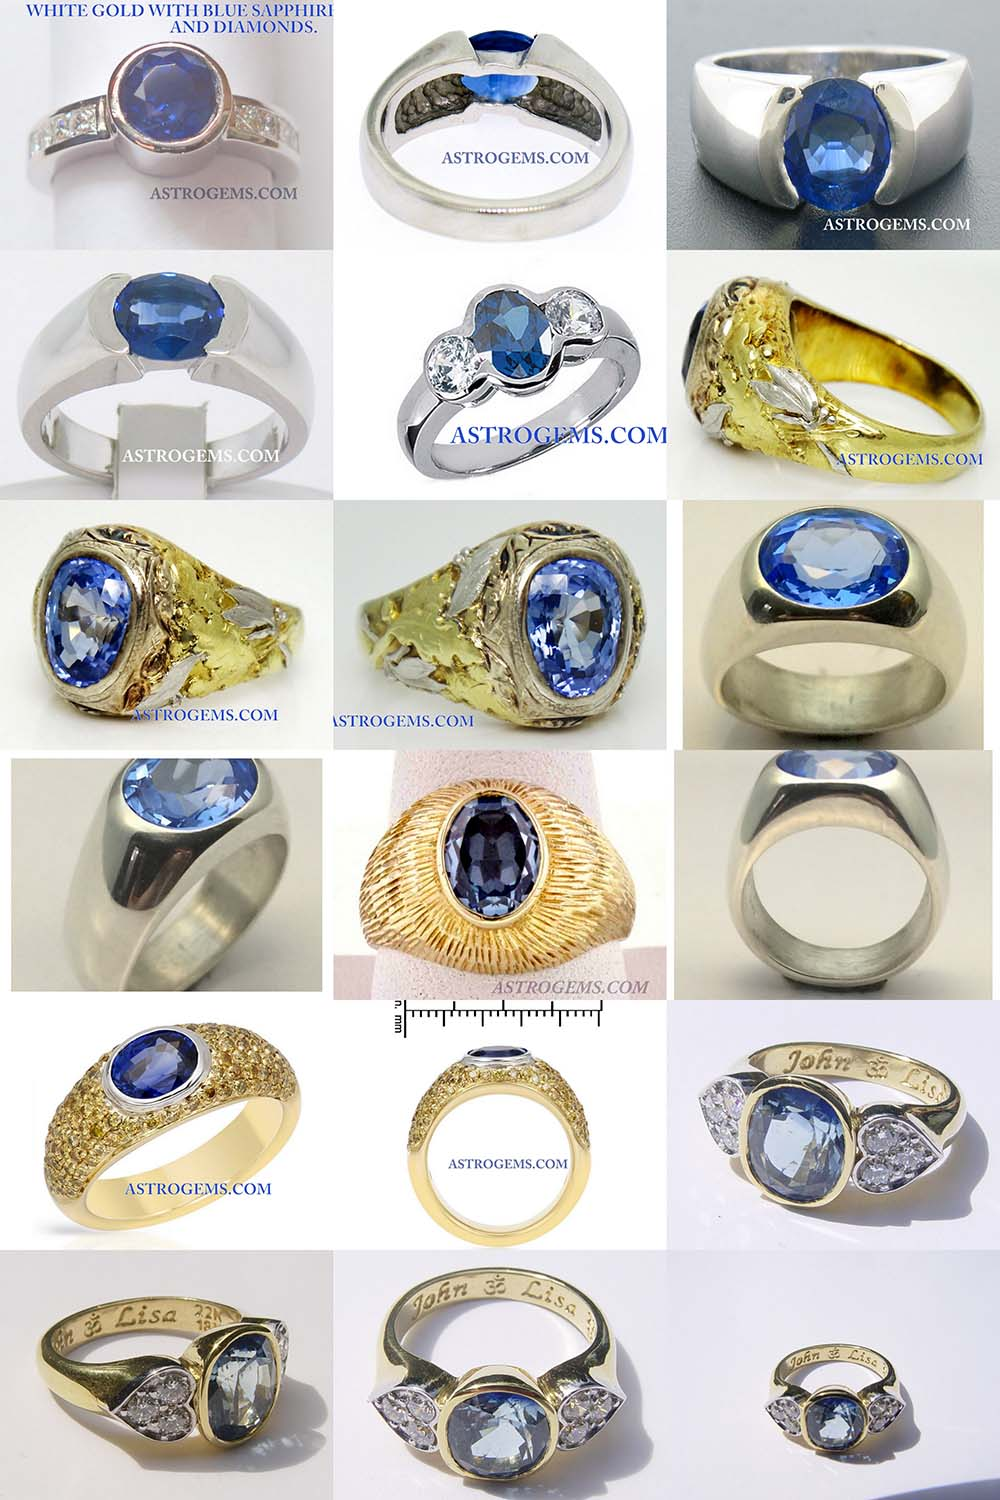 Astrogems makes many kinds of astrological blue sapphire rings and can create custom designs as well.